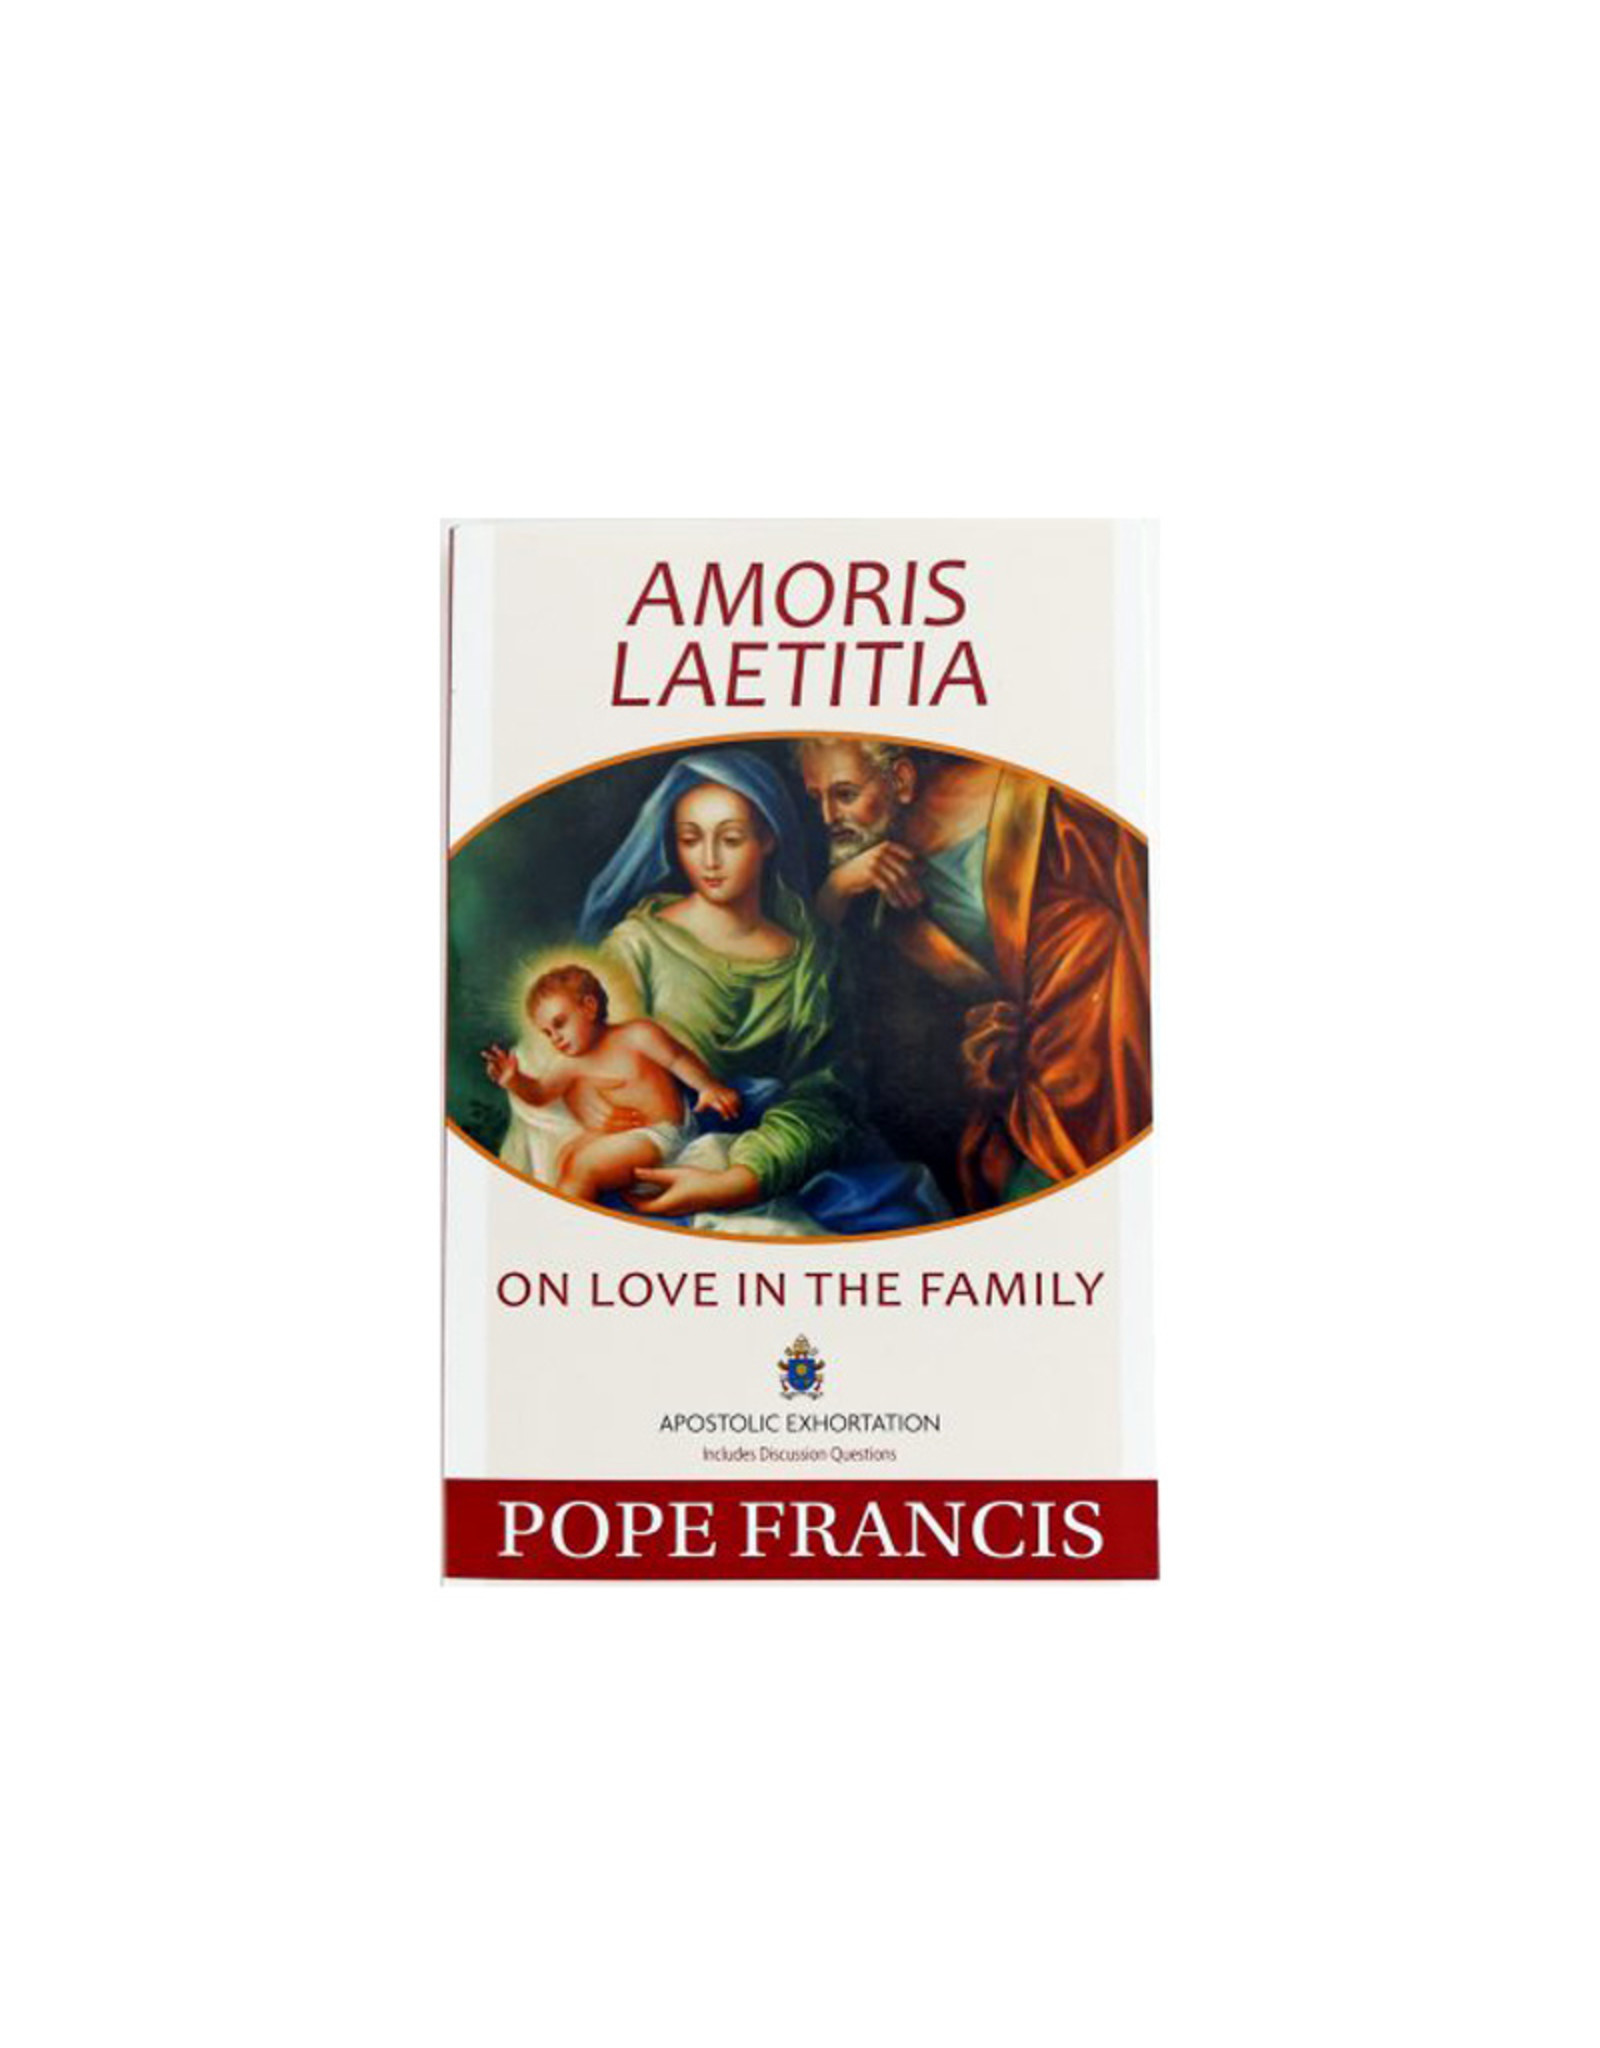 Amoris Laetitia, on love in the family. (anglais)